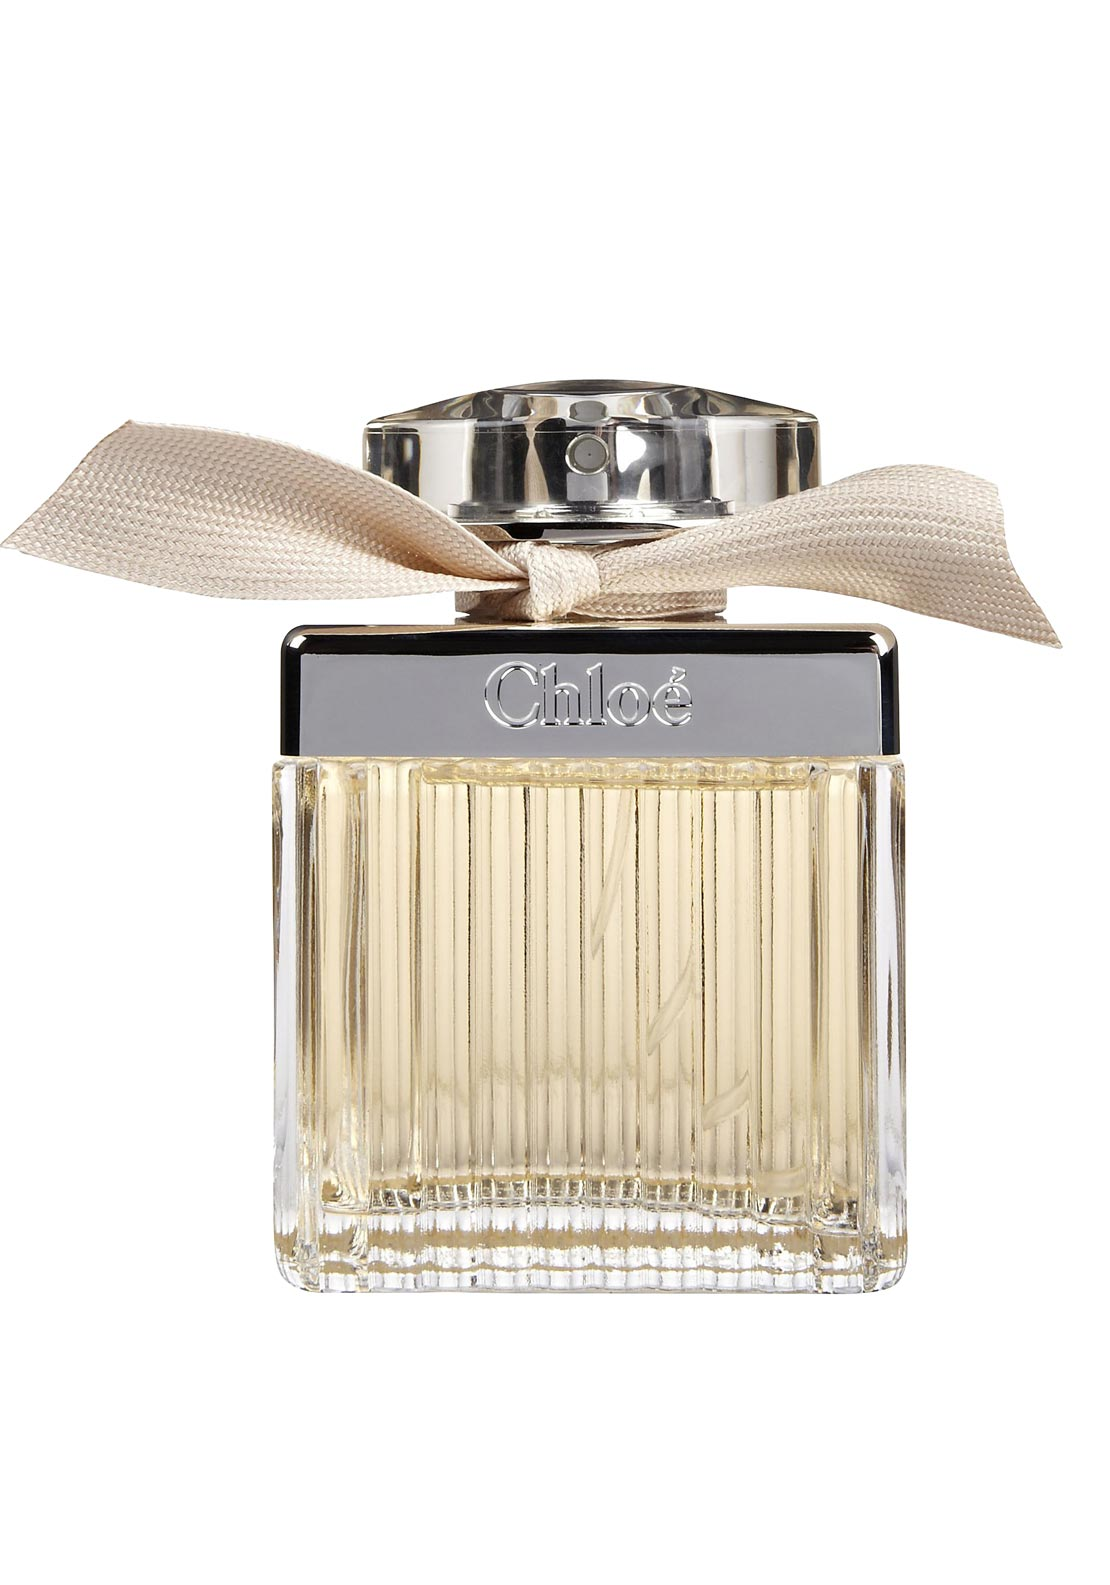 Chloe Eau de Parfum Natural Spray, 50ml